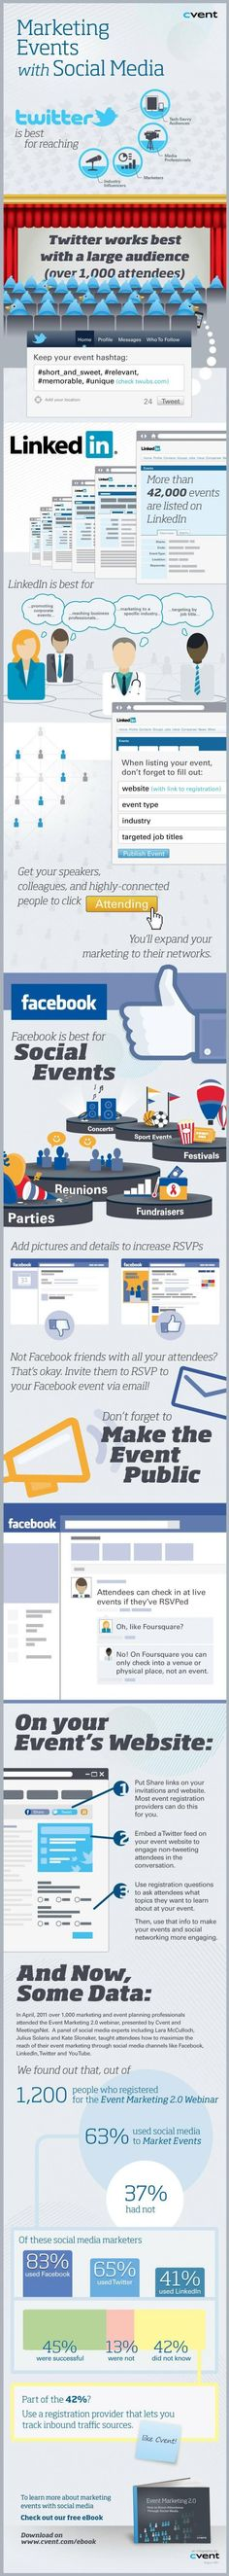 Marketing Events with Social Media